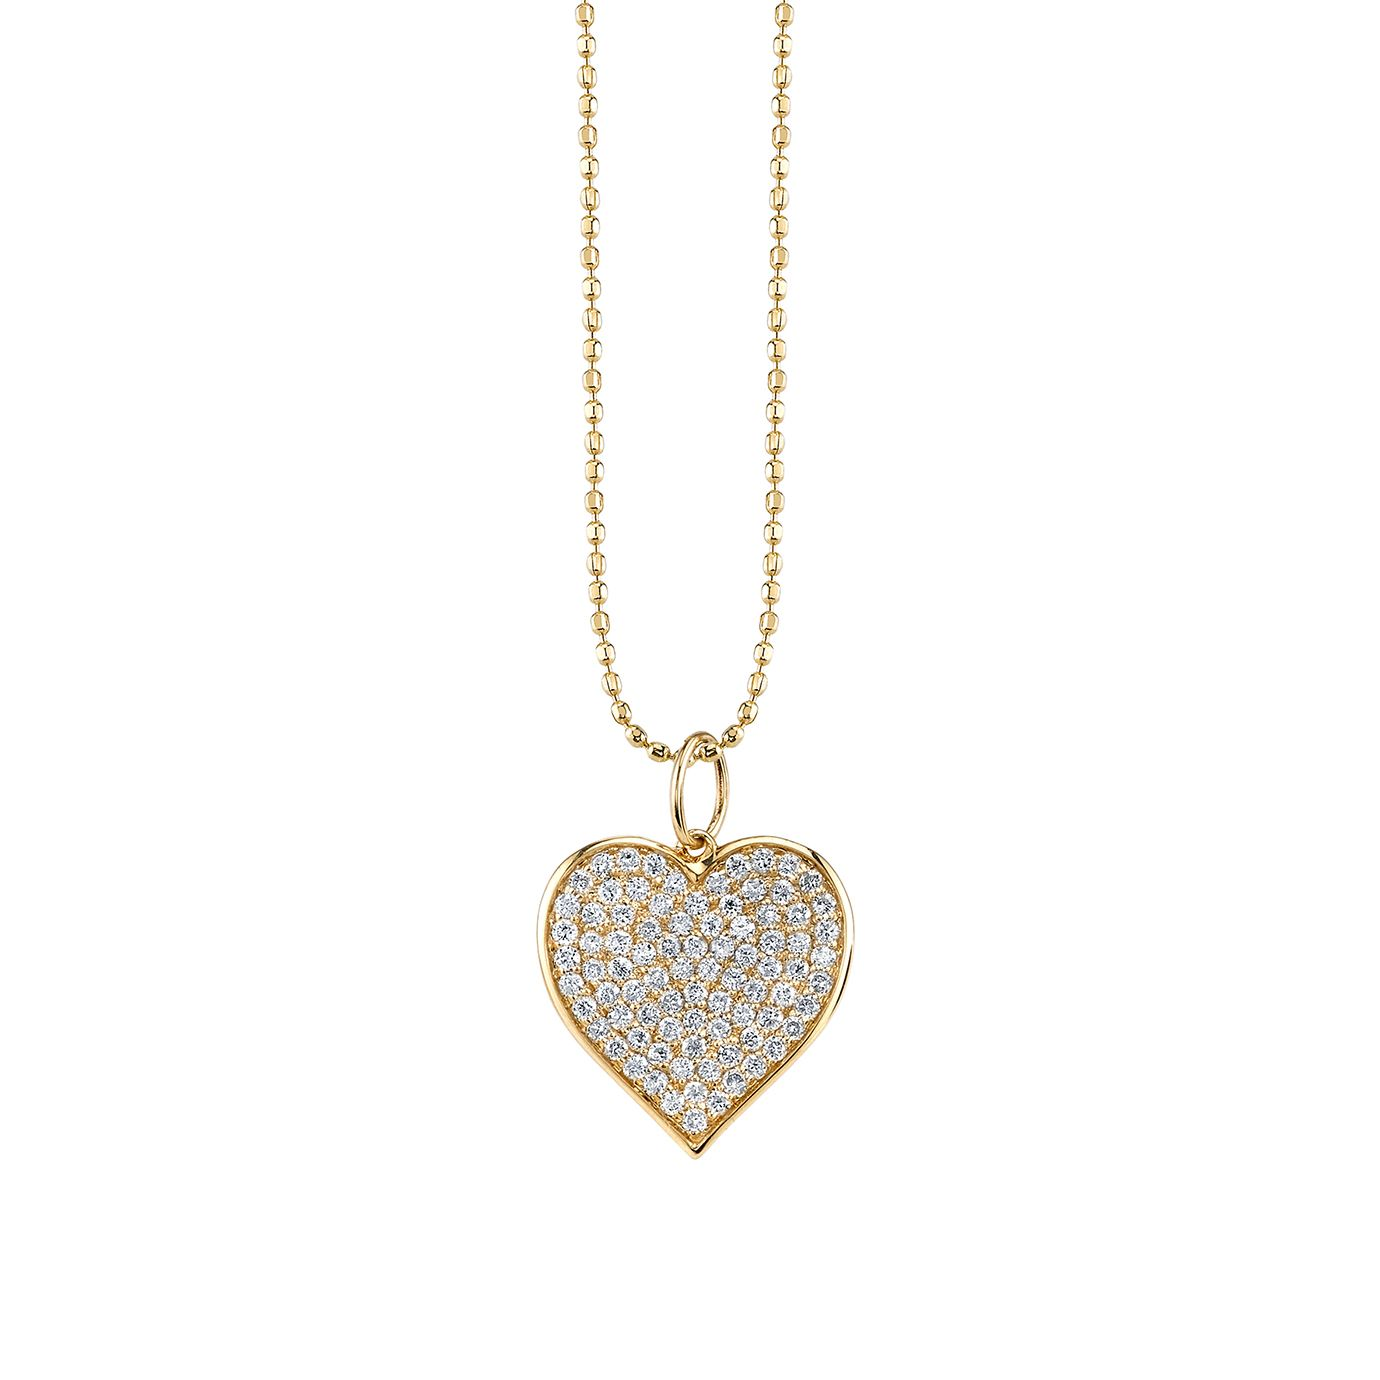 Heart pendant necklace adorned with pavé diamonds set in 14k gold